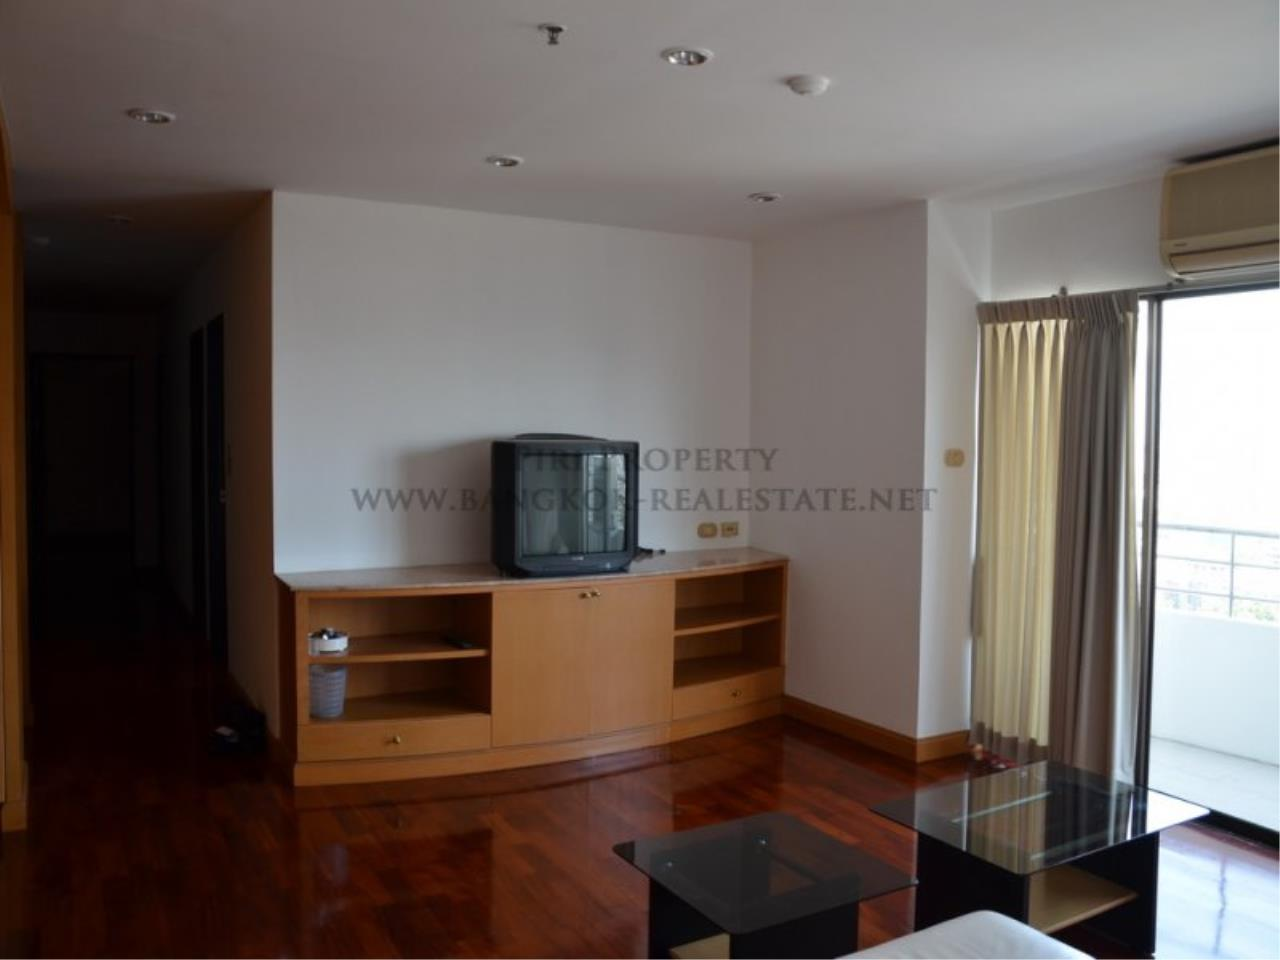 Piri Property Agency's Spacious 3 Bedroom Condo in Ekkamai - 128 SQM for 50K - Top View Tower - 30th Floor 4